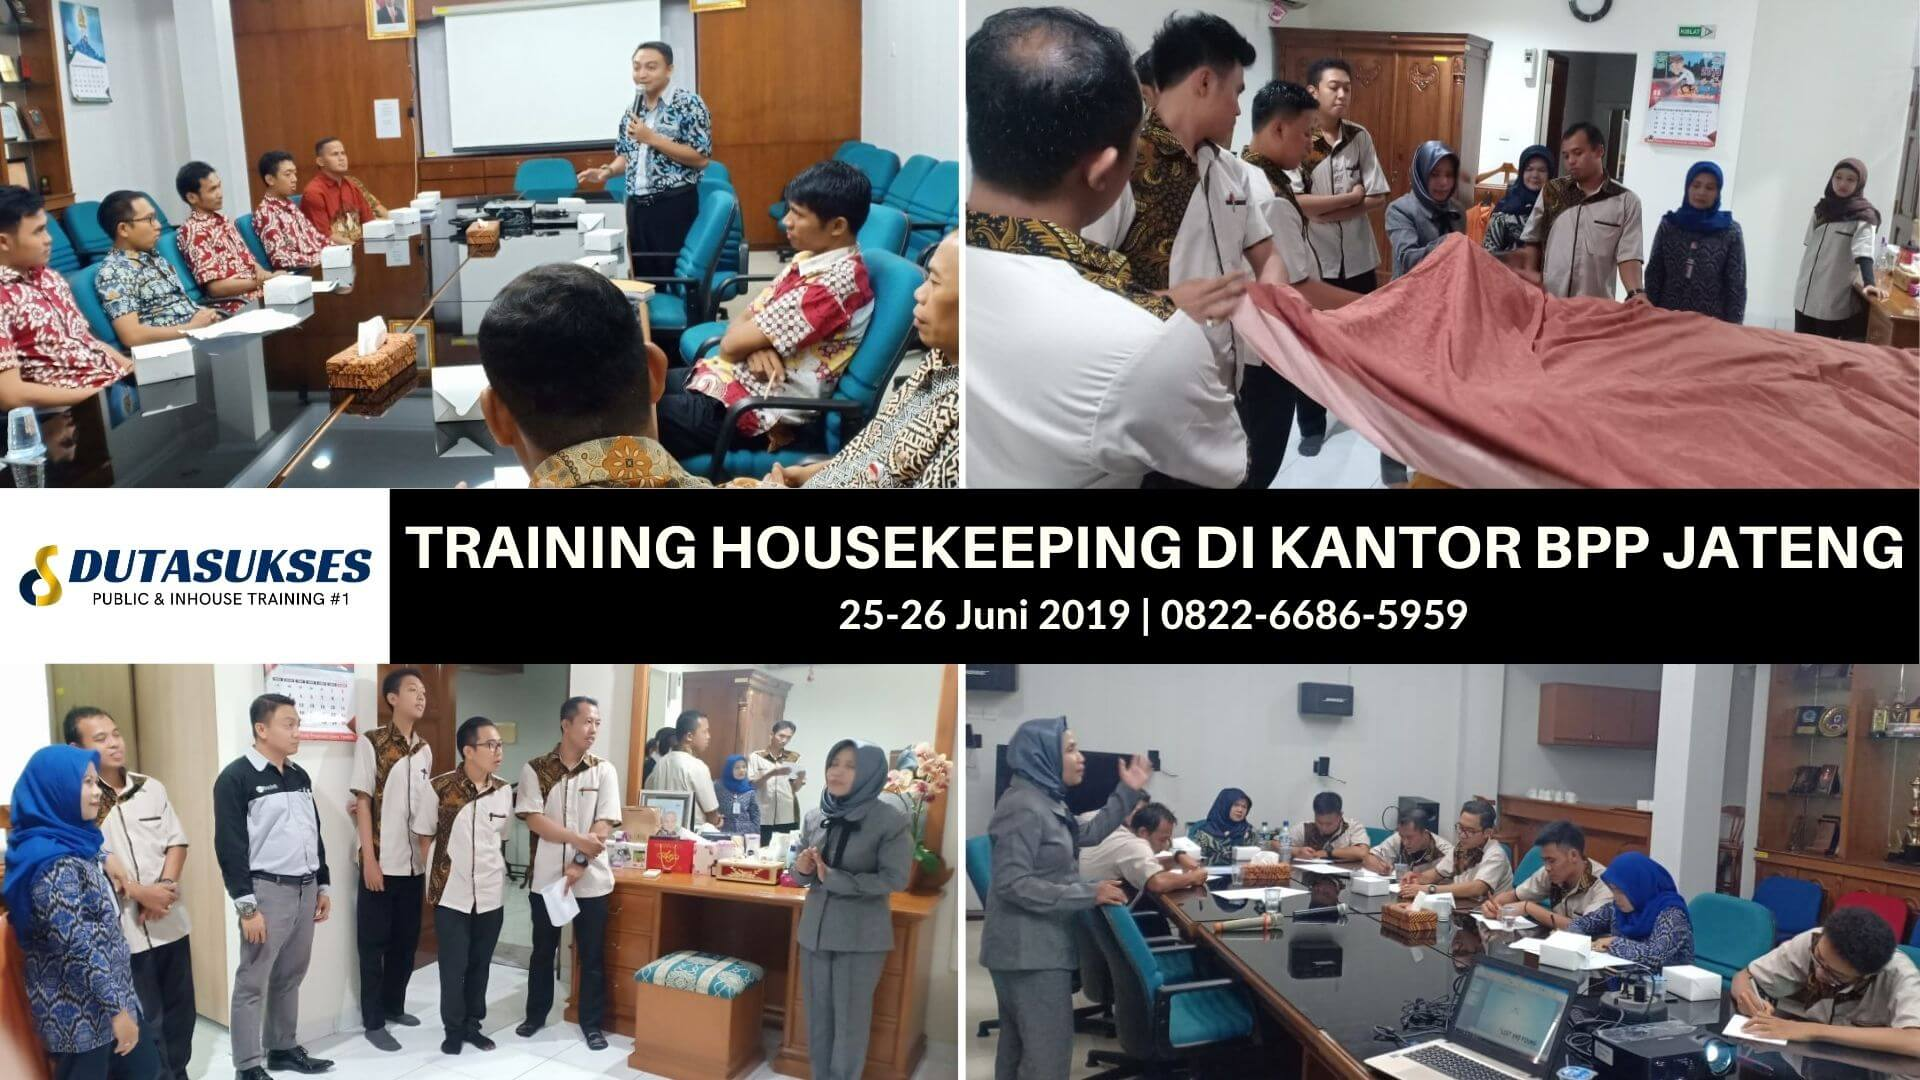 Training Housekeeping, Tata Graha, Pelatihan Houskeeping Perhotelan, Cilla, Kantor BPP